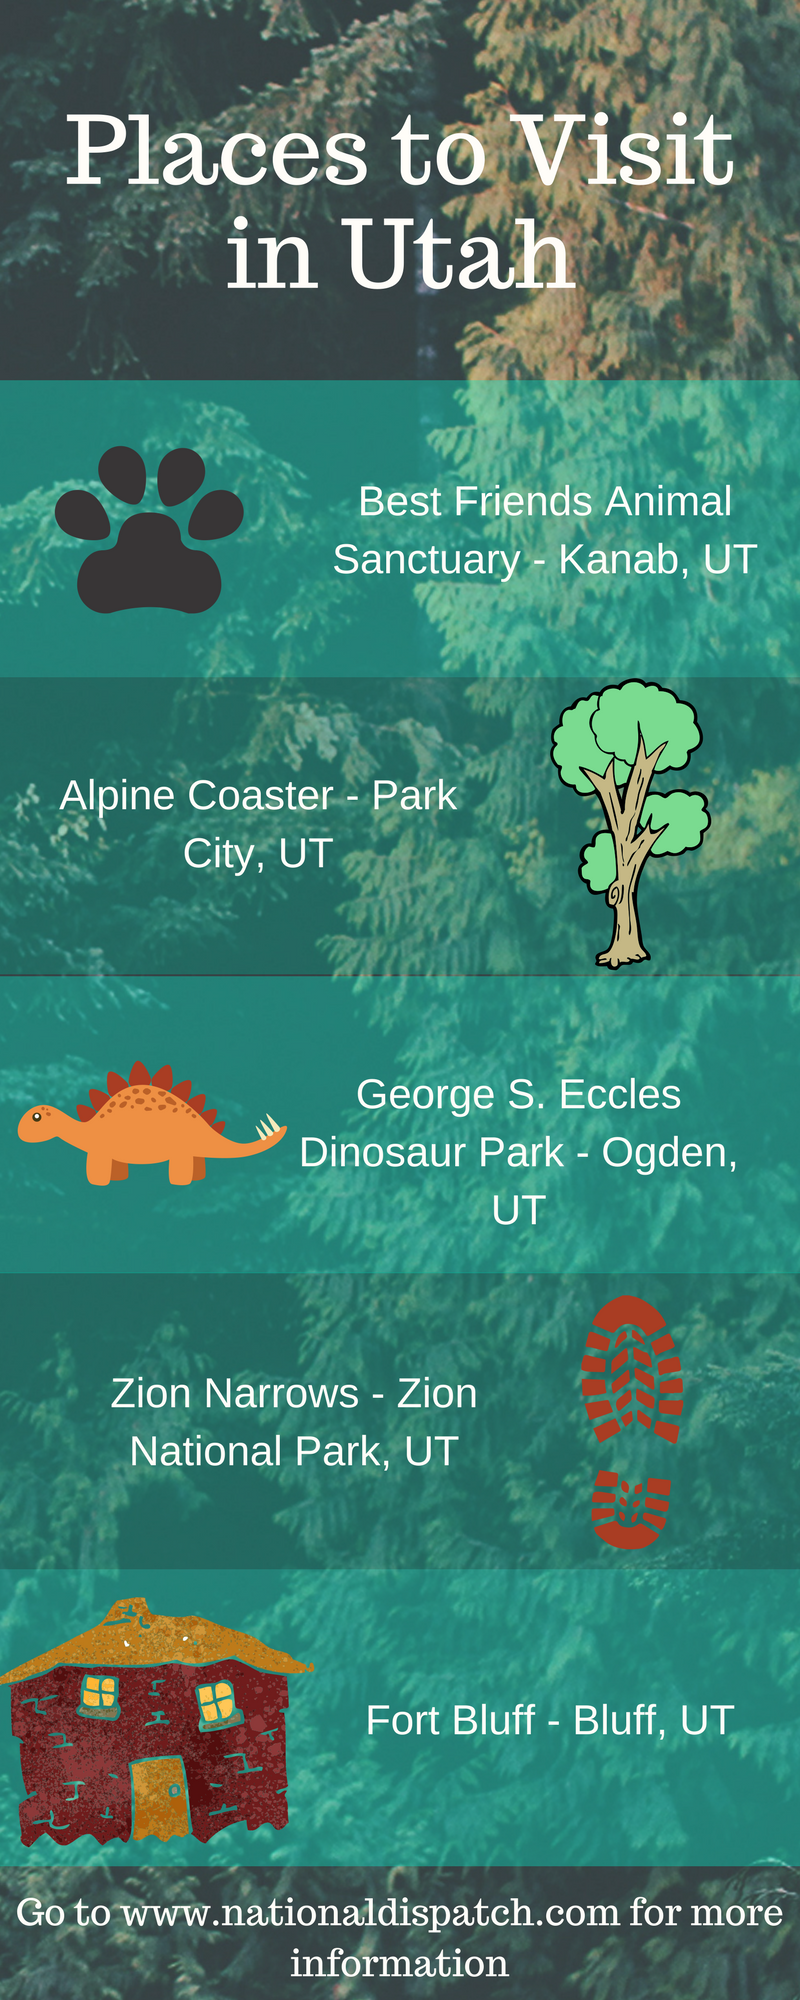 Places To Visit In Utah Infographic